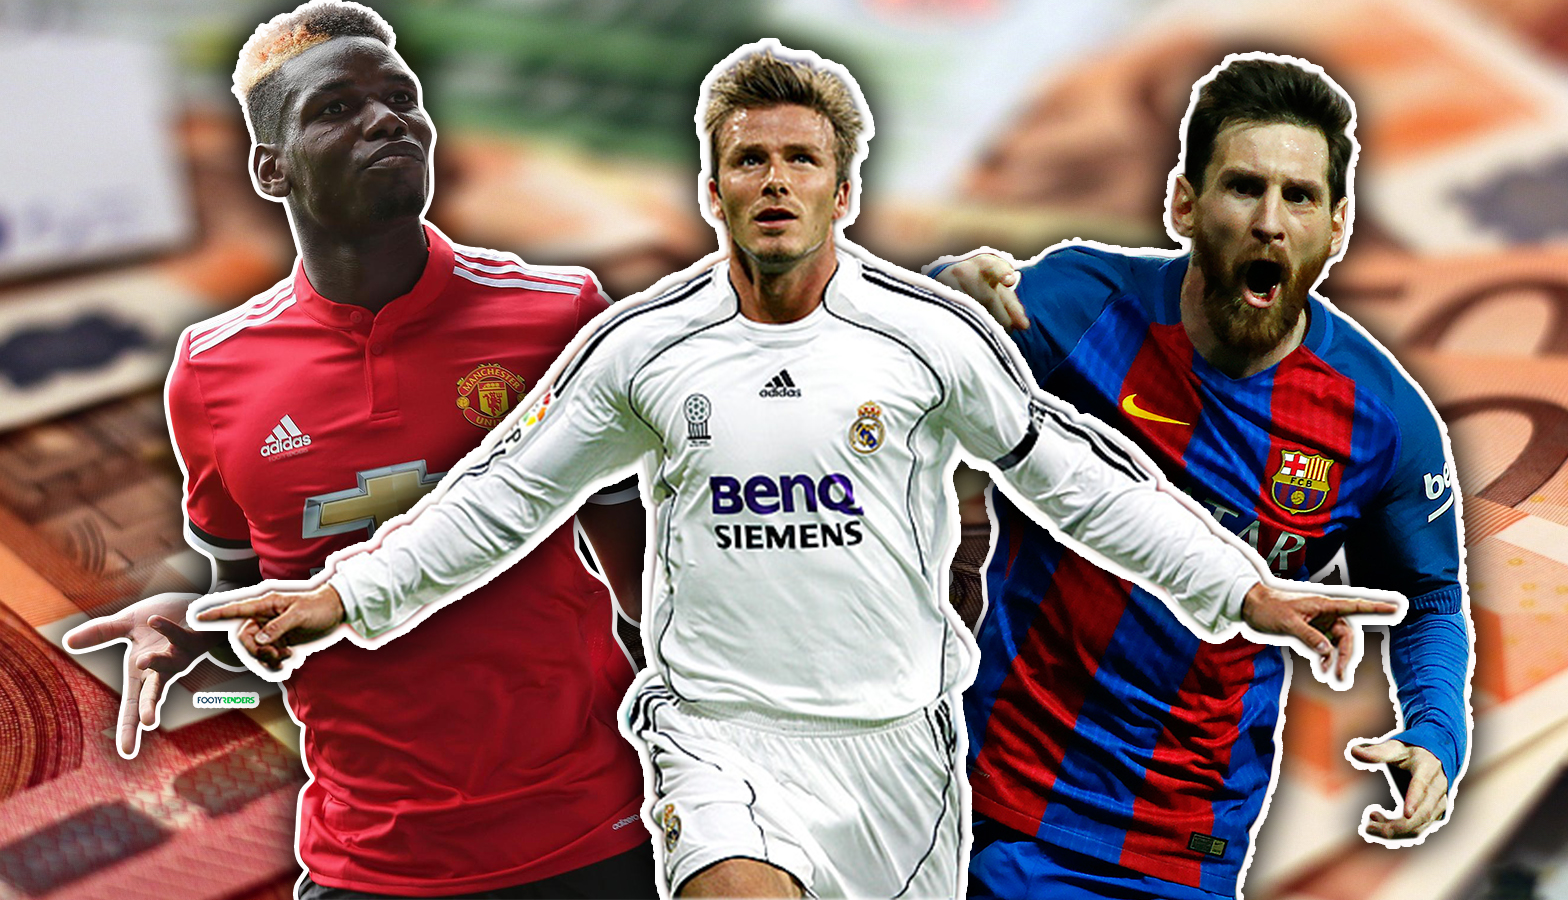 Here's How 2007's Top 10 Best Paid Footballers Compare To 2017's